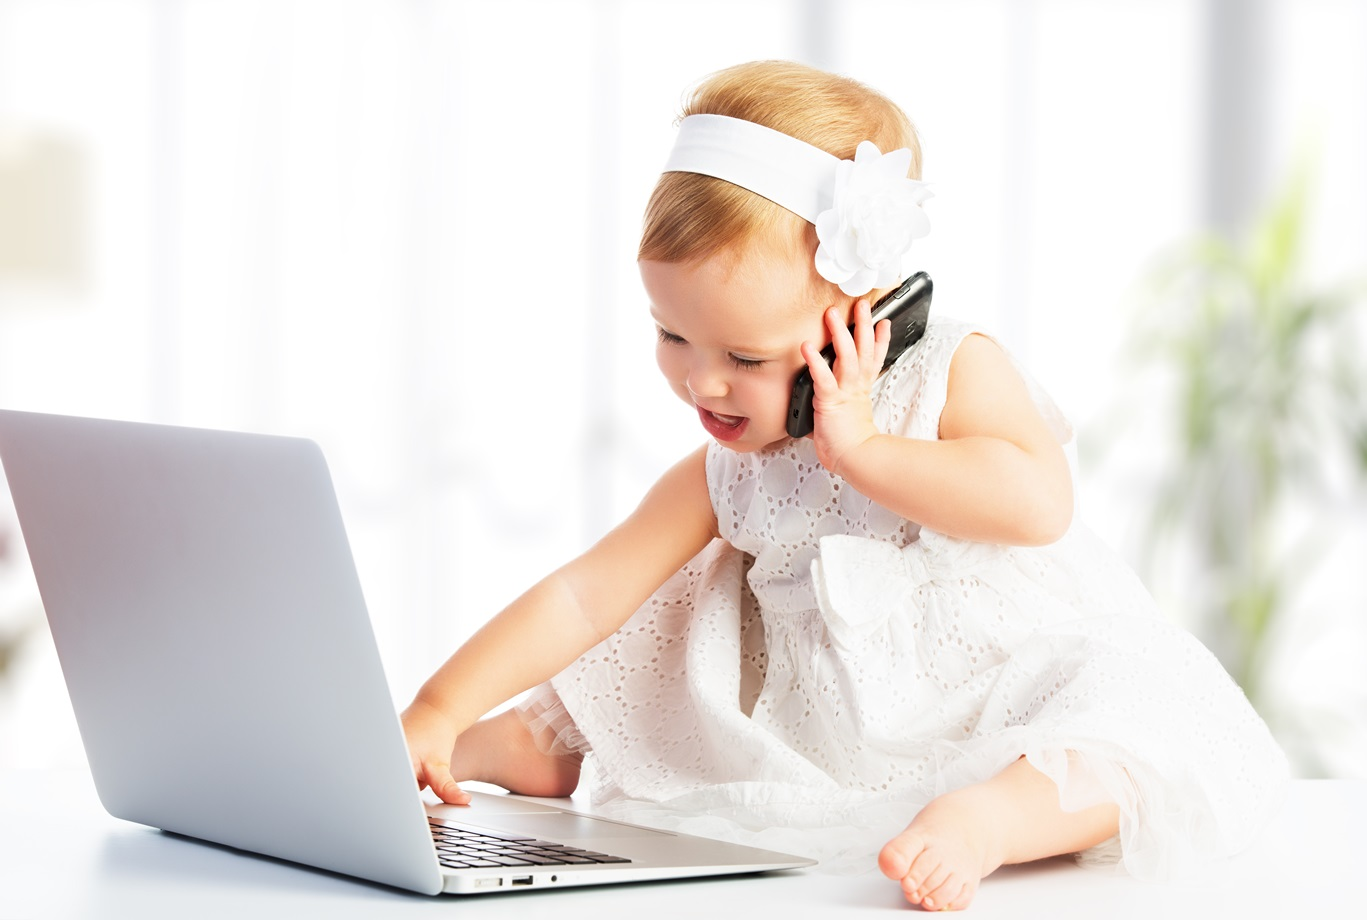 dollarphotoclub_58811166-baby-on-laptop-and-phone.jpg